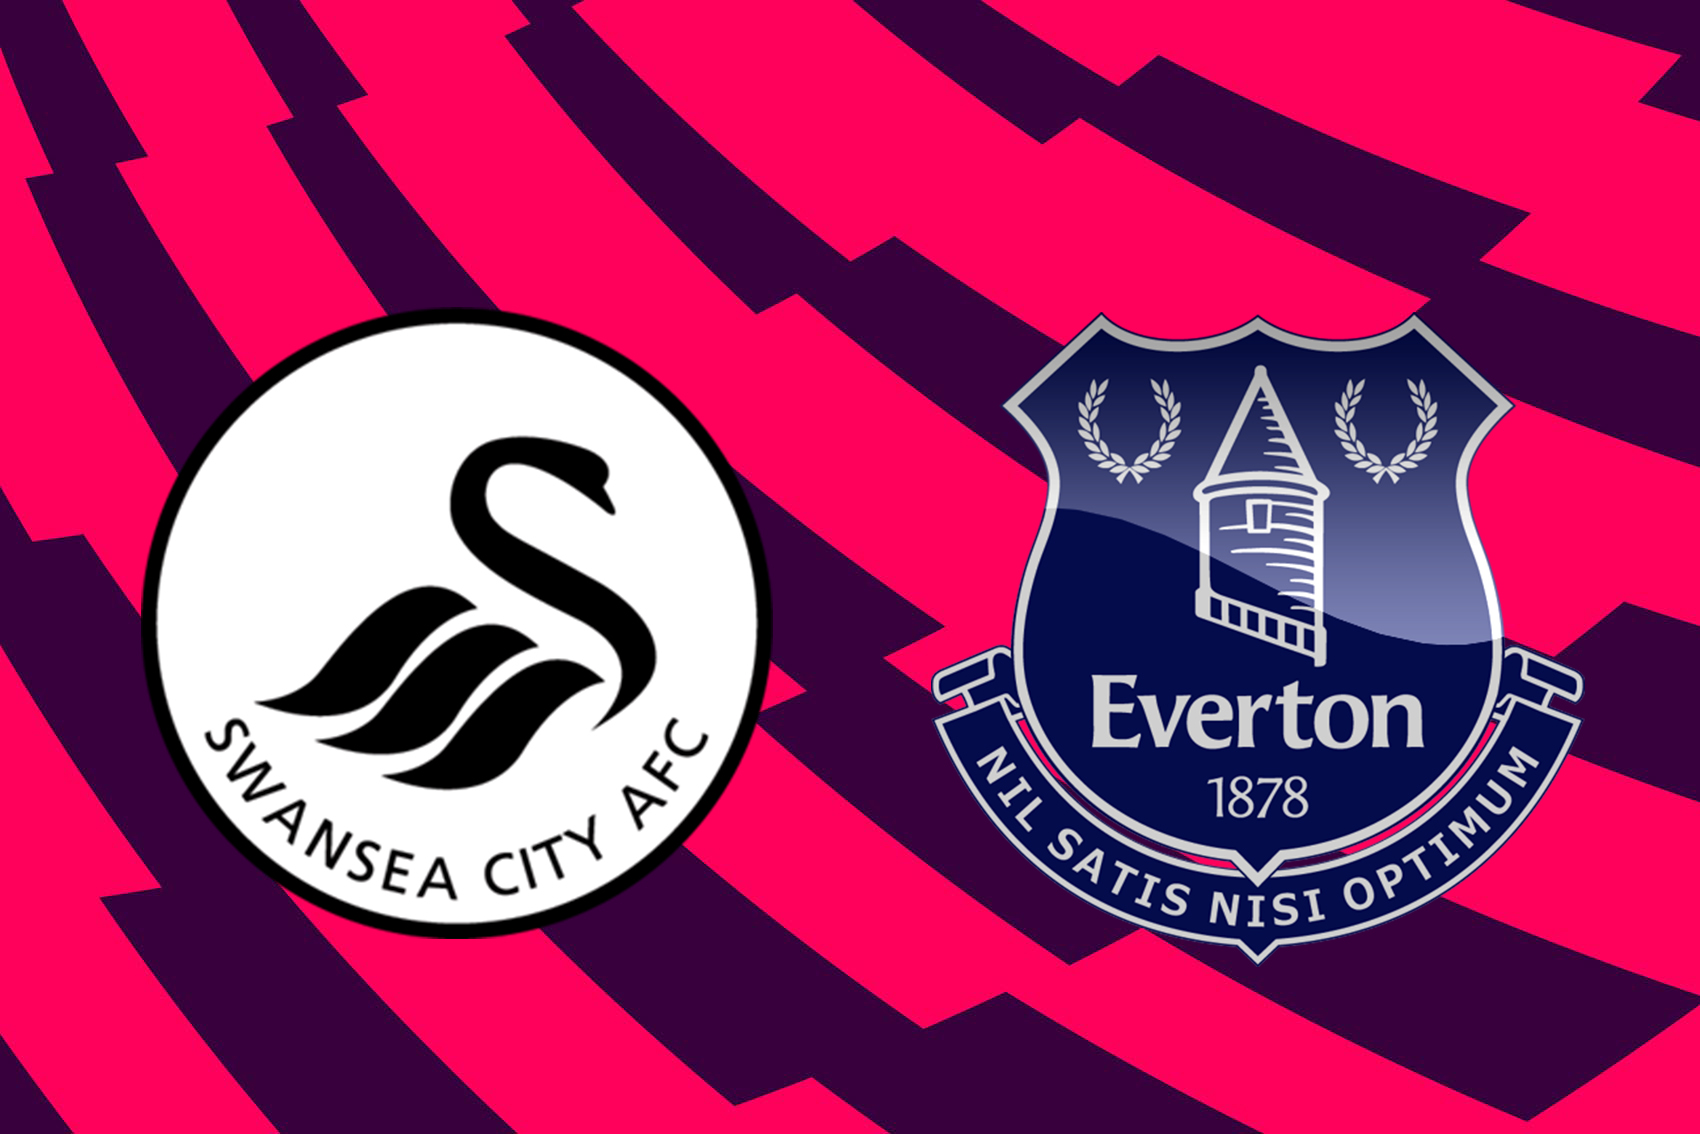 swansea-vs-everton-tip-bong-da-14-4-2018 1